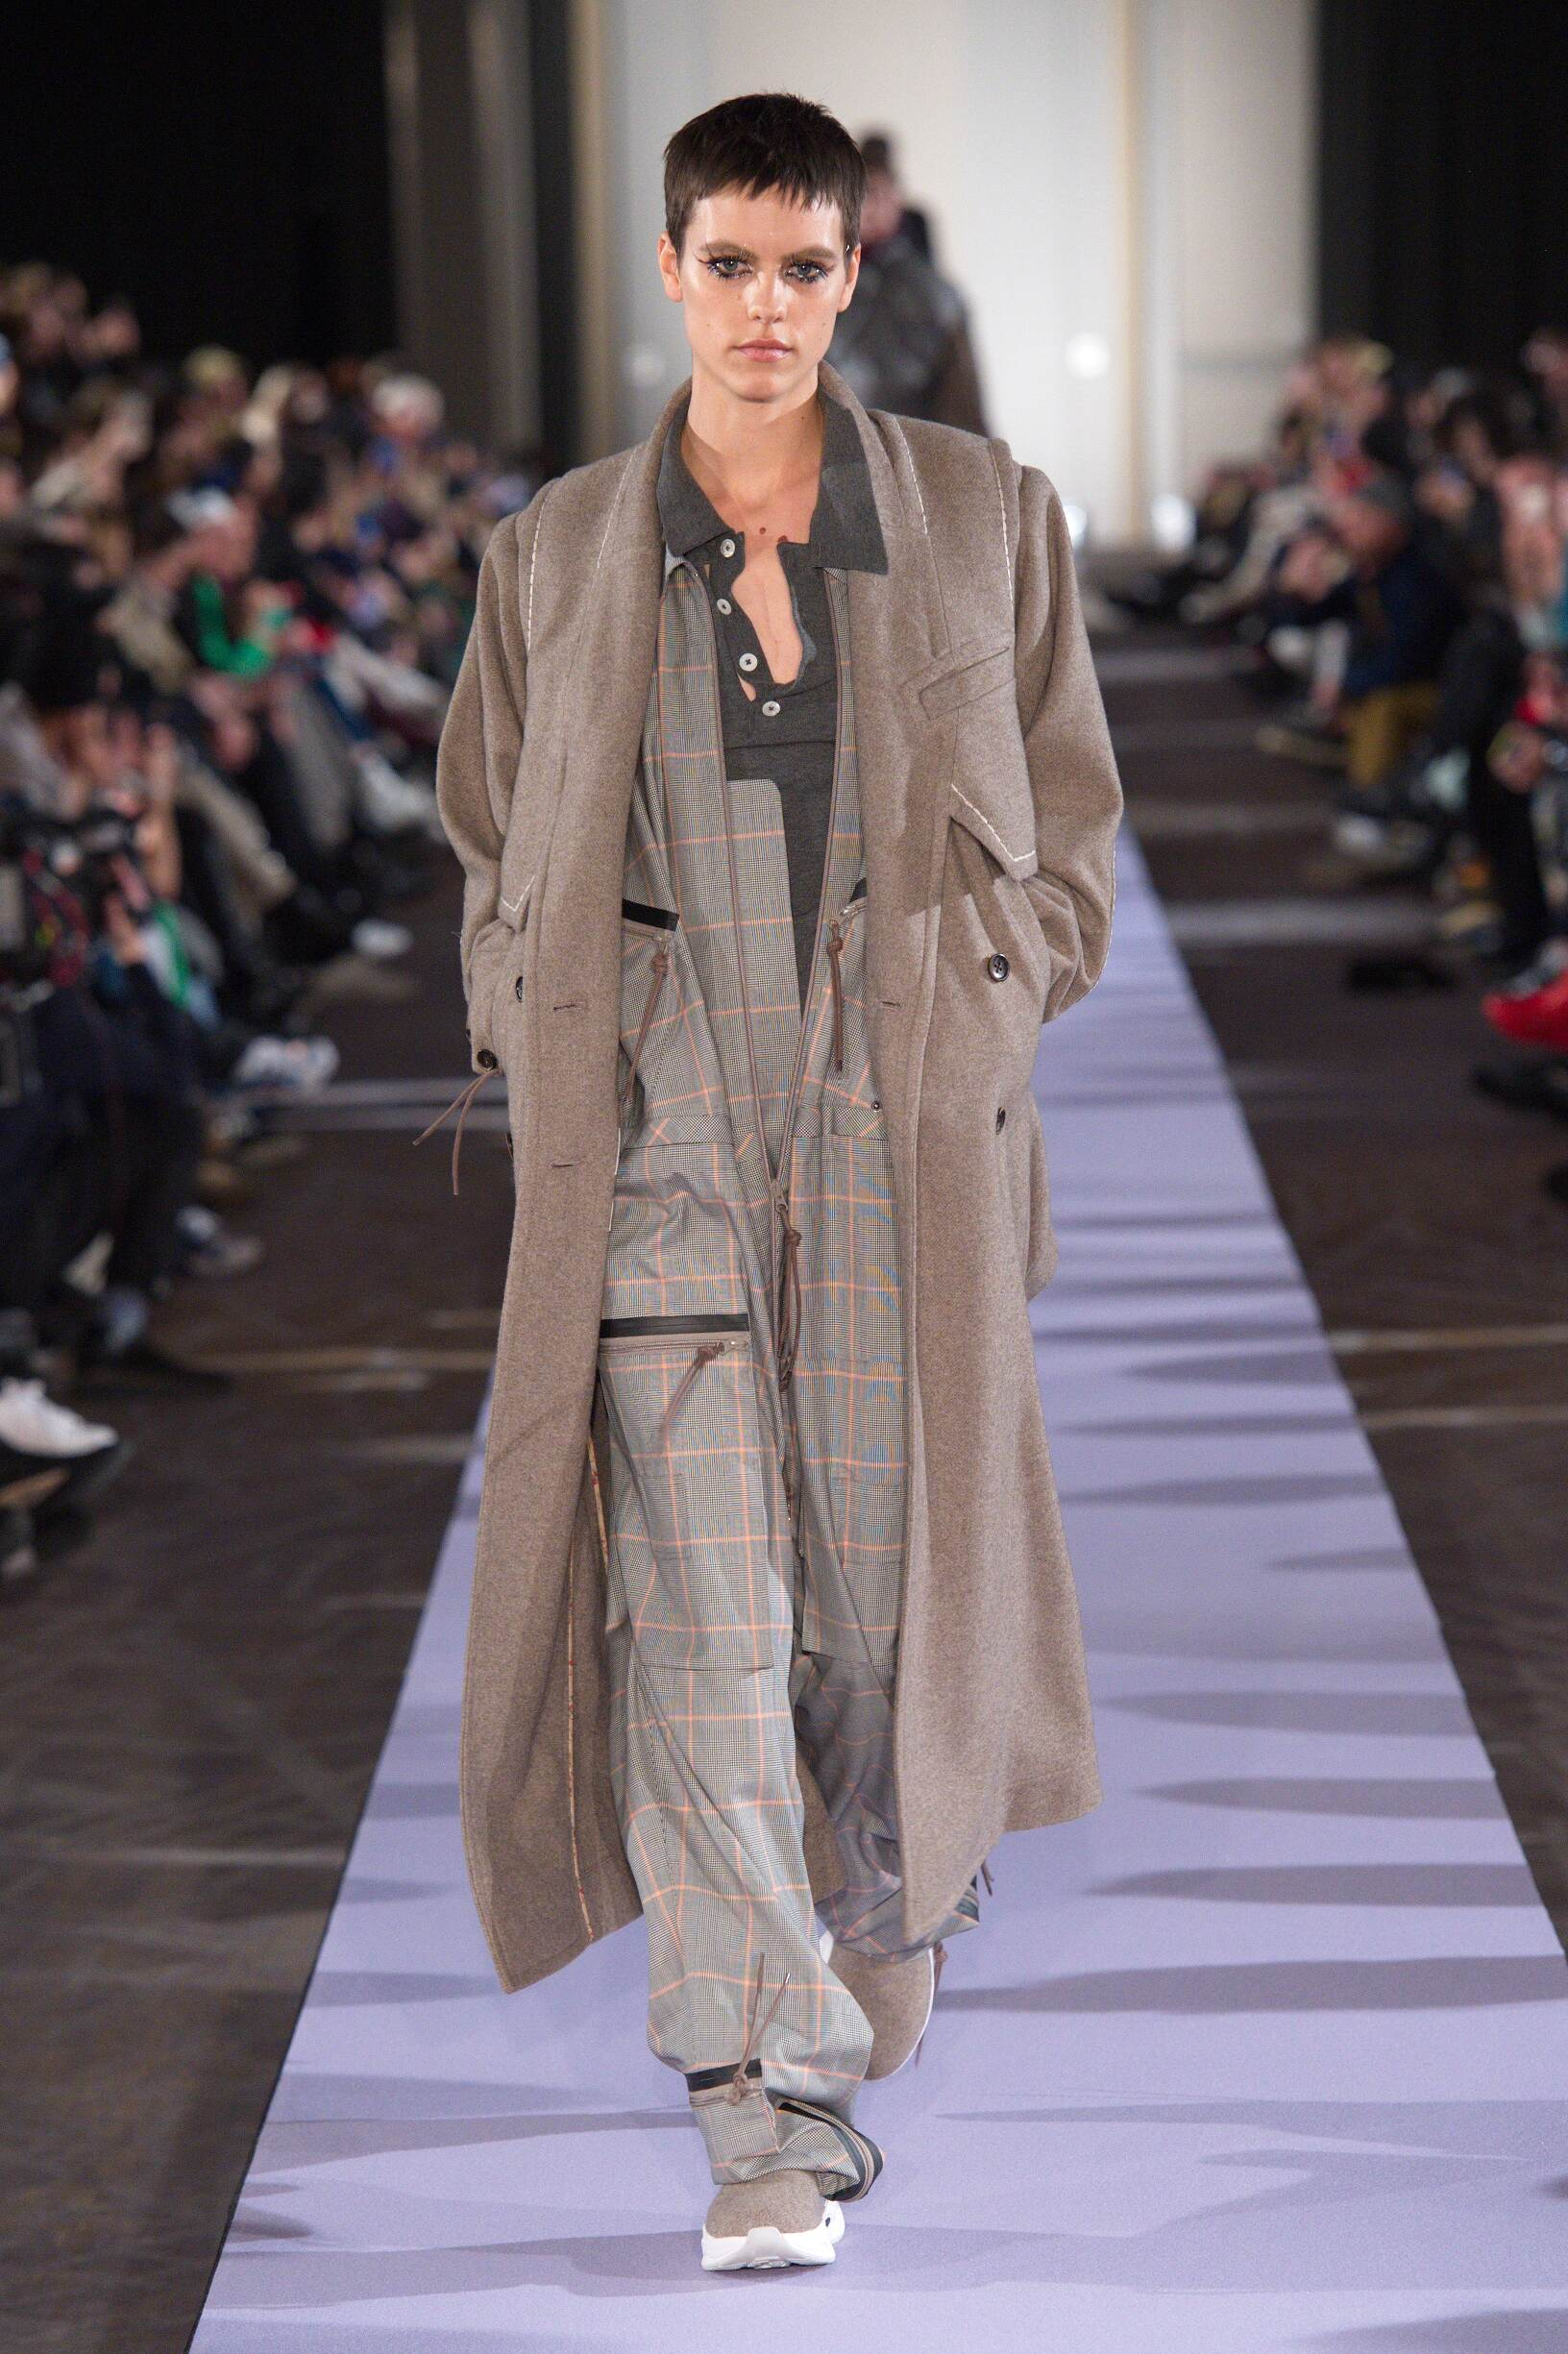 Runway Andreas Kronthaler for Vivienne Westwood Fall Winter 2019 Collection Paris Fashion Week